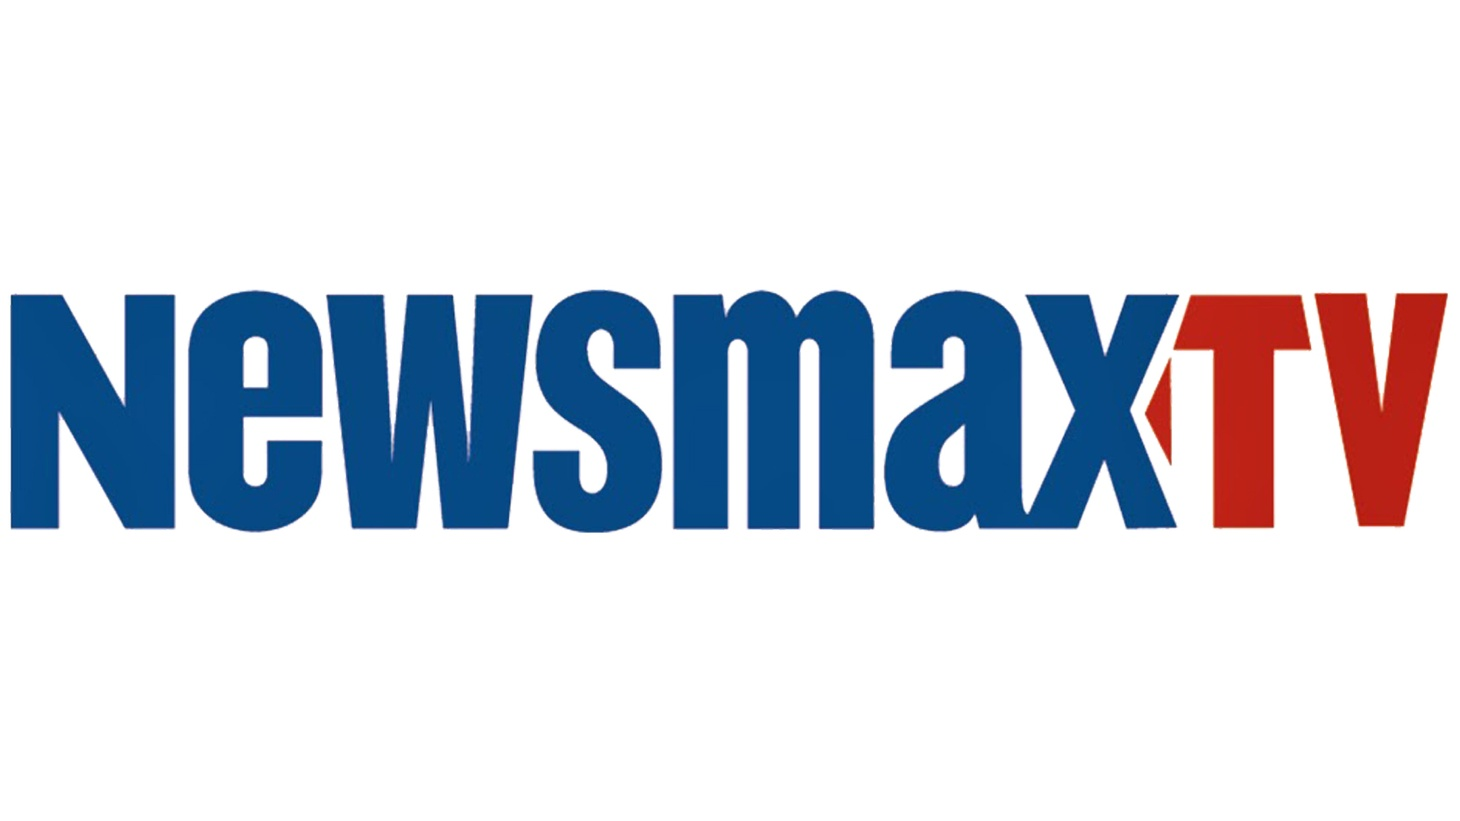 President Trump recently spent a lot of time tweeting or retweeting attacks against Fox News and promoting their competitors, including Newsmax and One America News Network.